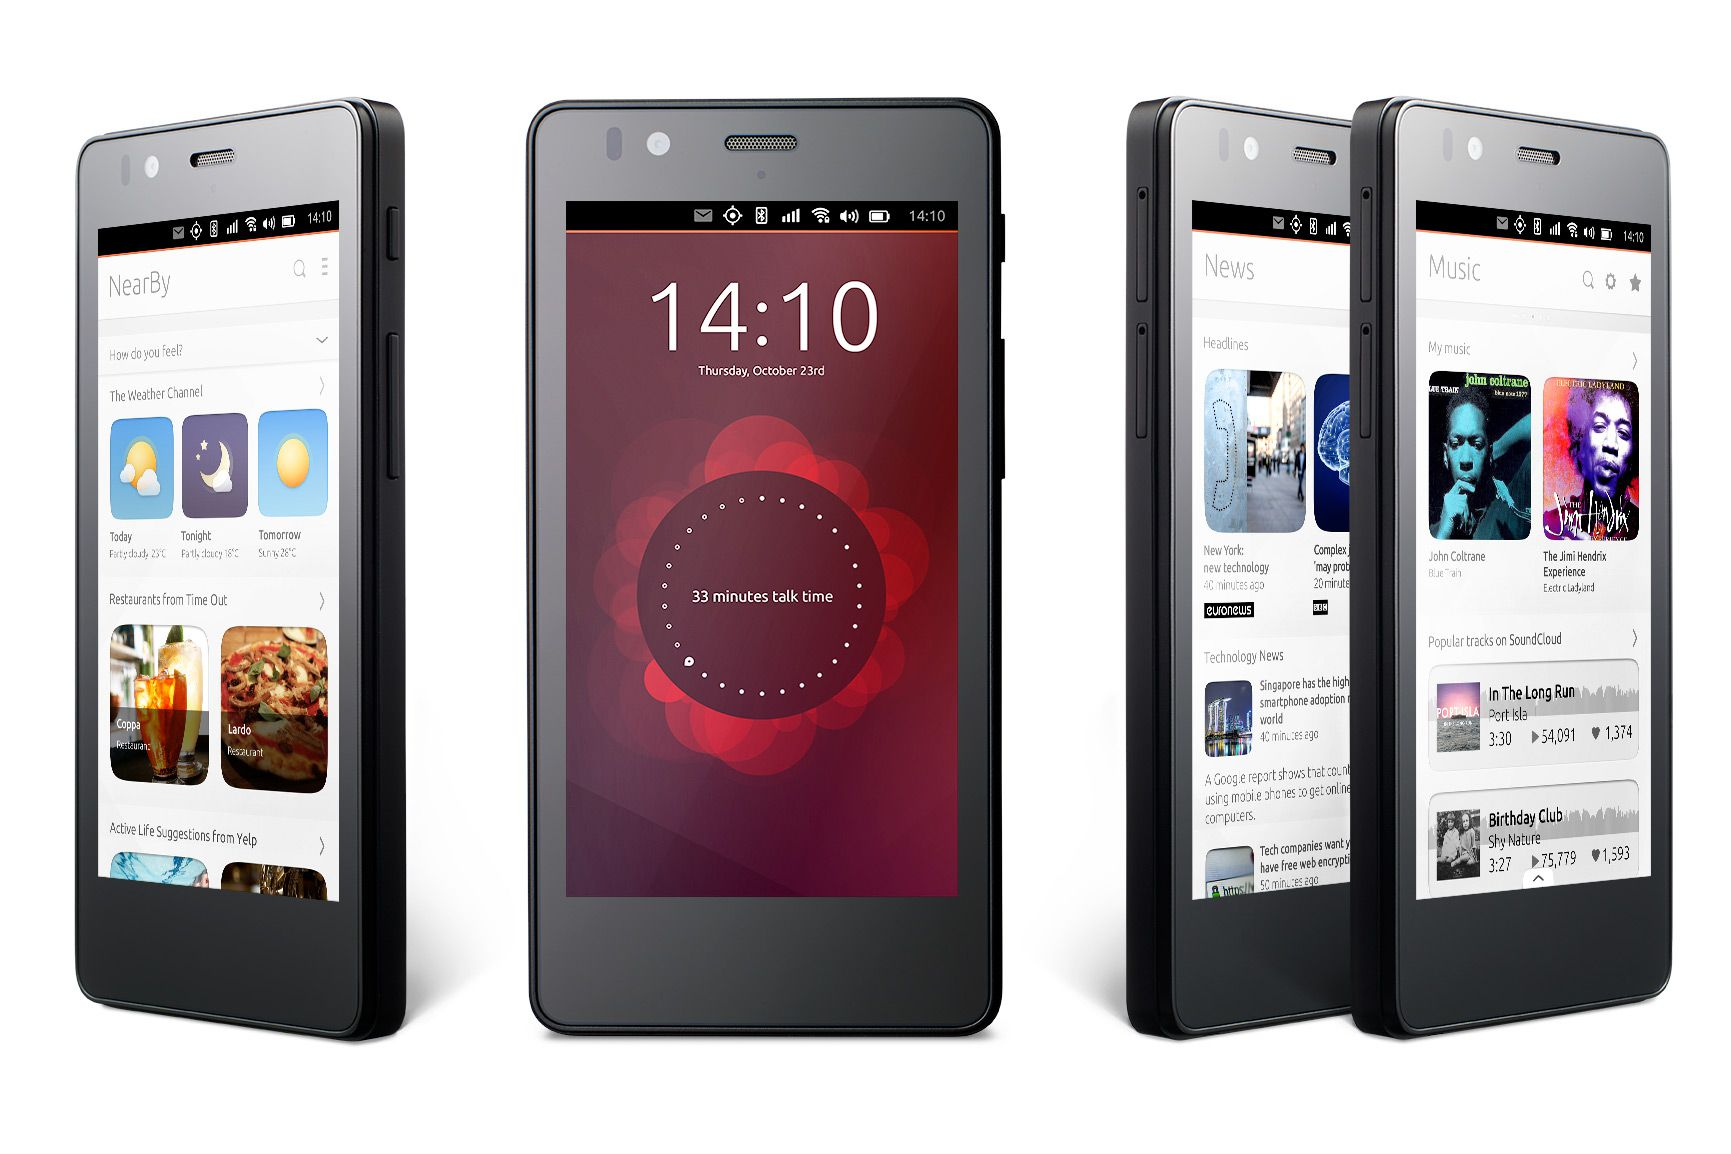 ubuntu phone with desktop capabilities on the way eteknix